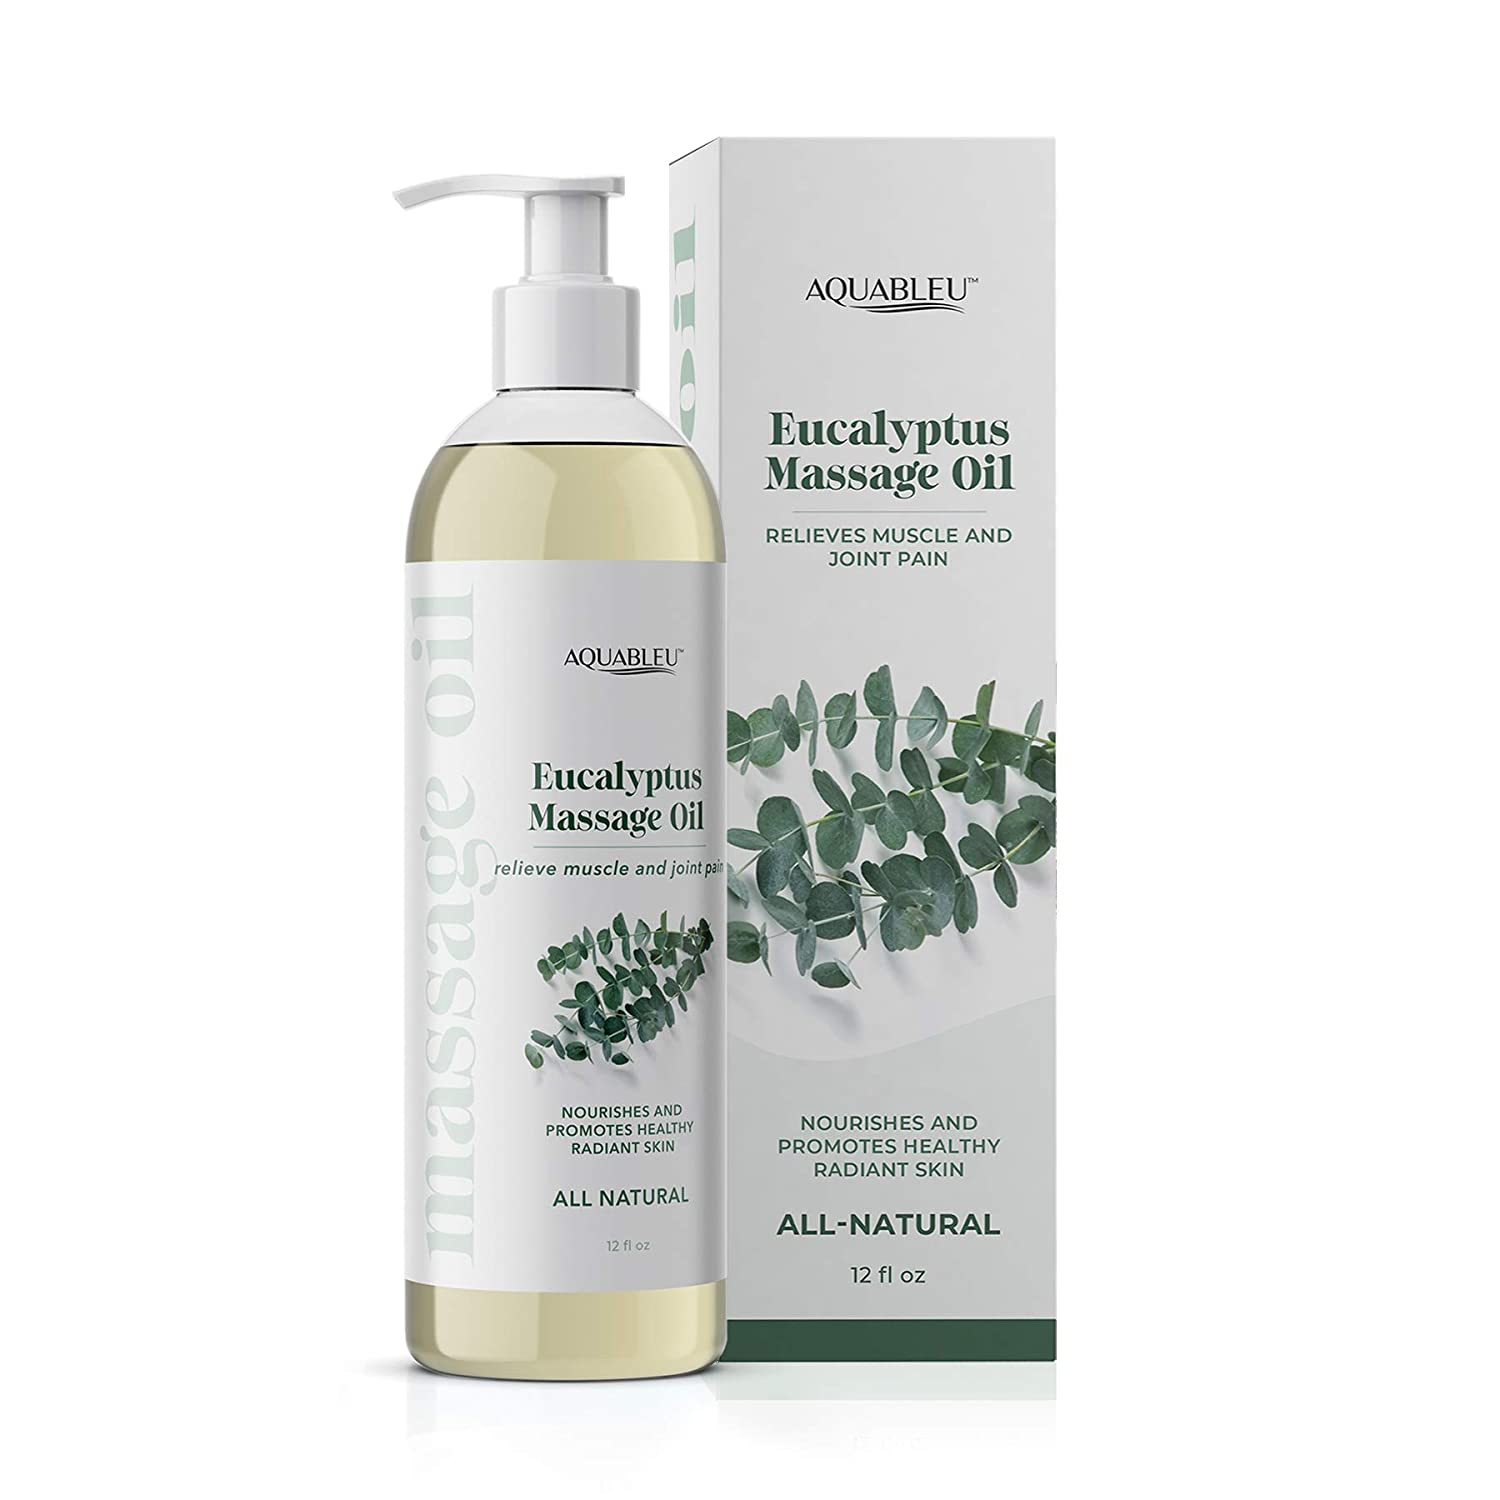 Aquableu's Eucalyptus Massage Oil –Natural at Home Massage Therapy, Soothes Irritated Skin and Muscle Pain, Promotes Mental Clarity – for Men and Women 12oz